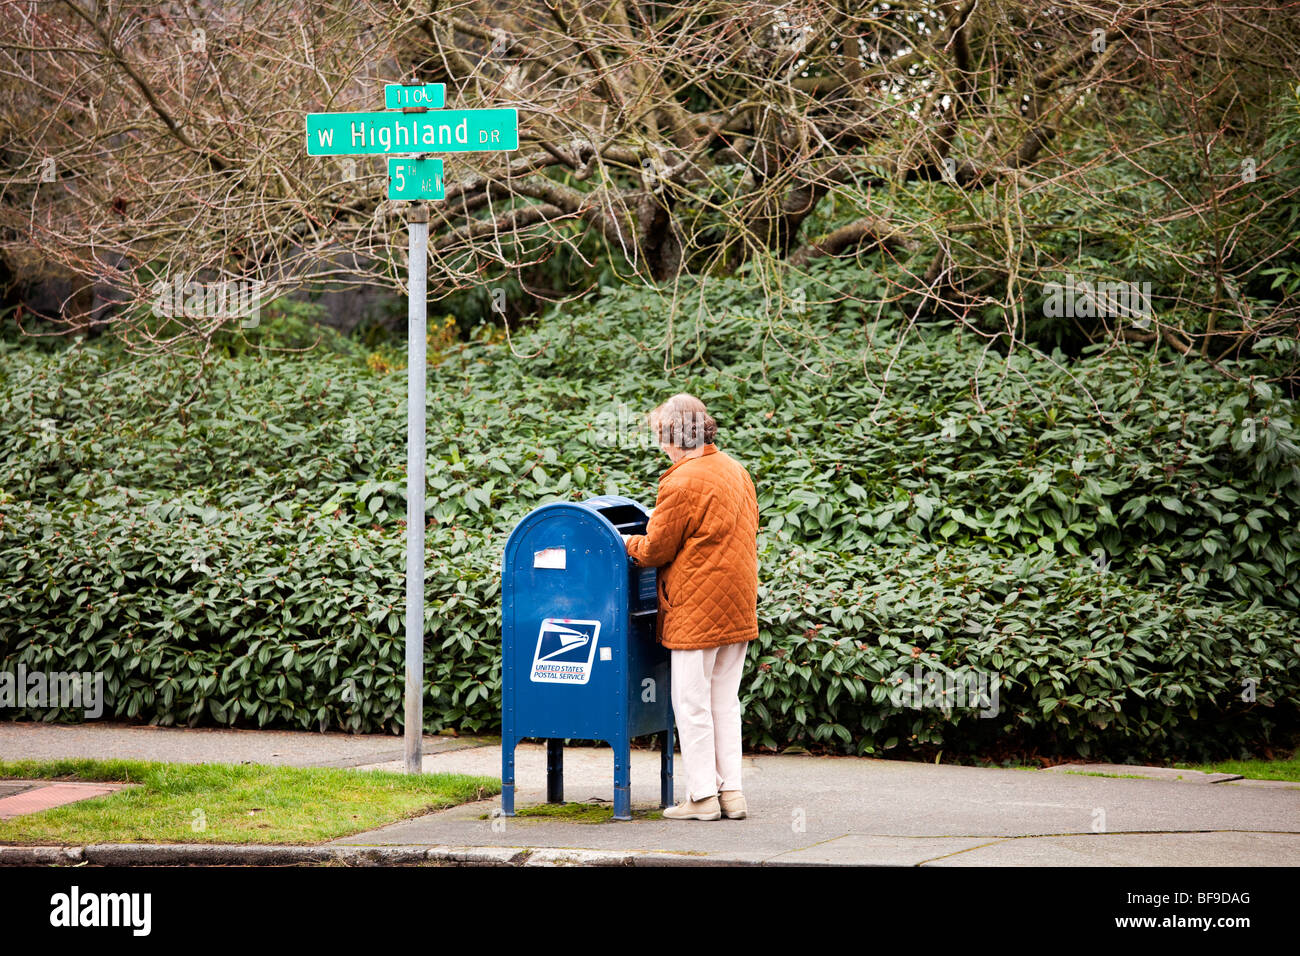 Woman mailing letter at neighborhood mailbox, Highland Drive, Queen Anne, Seattle, Washington - Stock Image